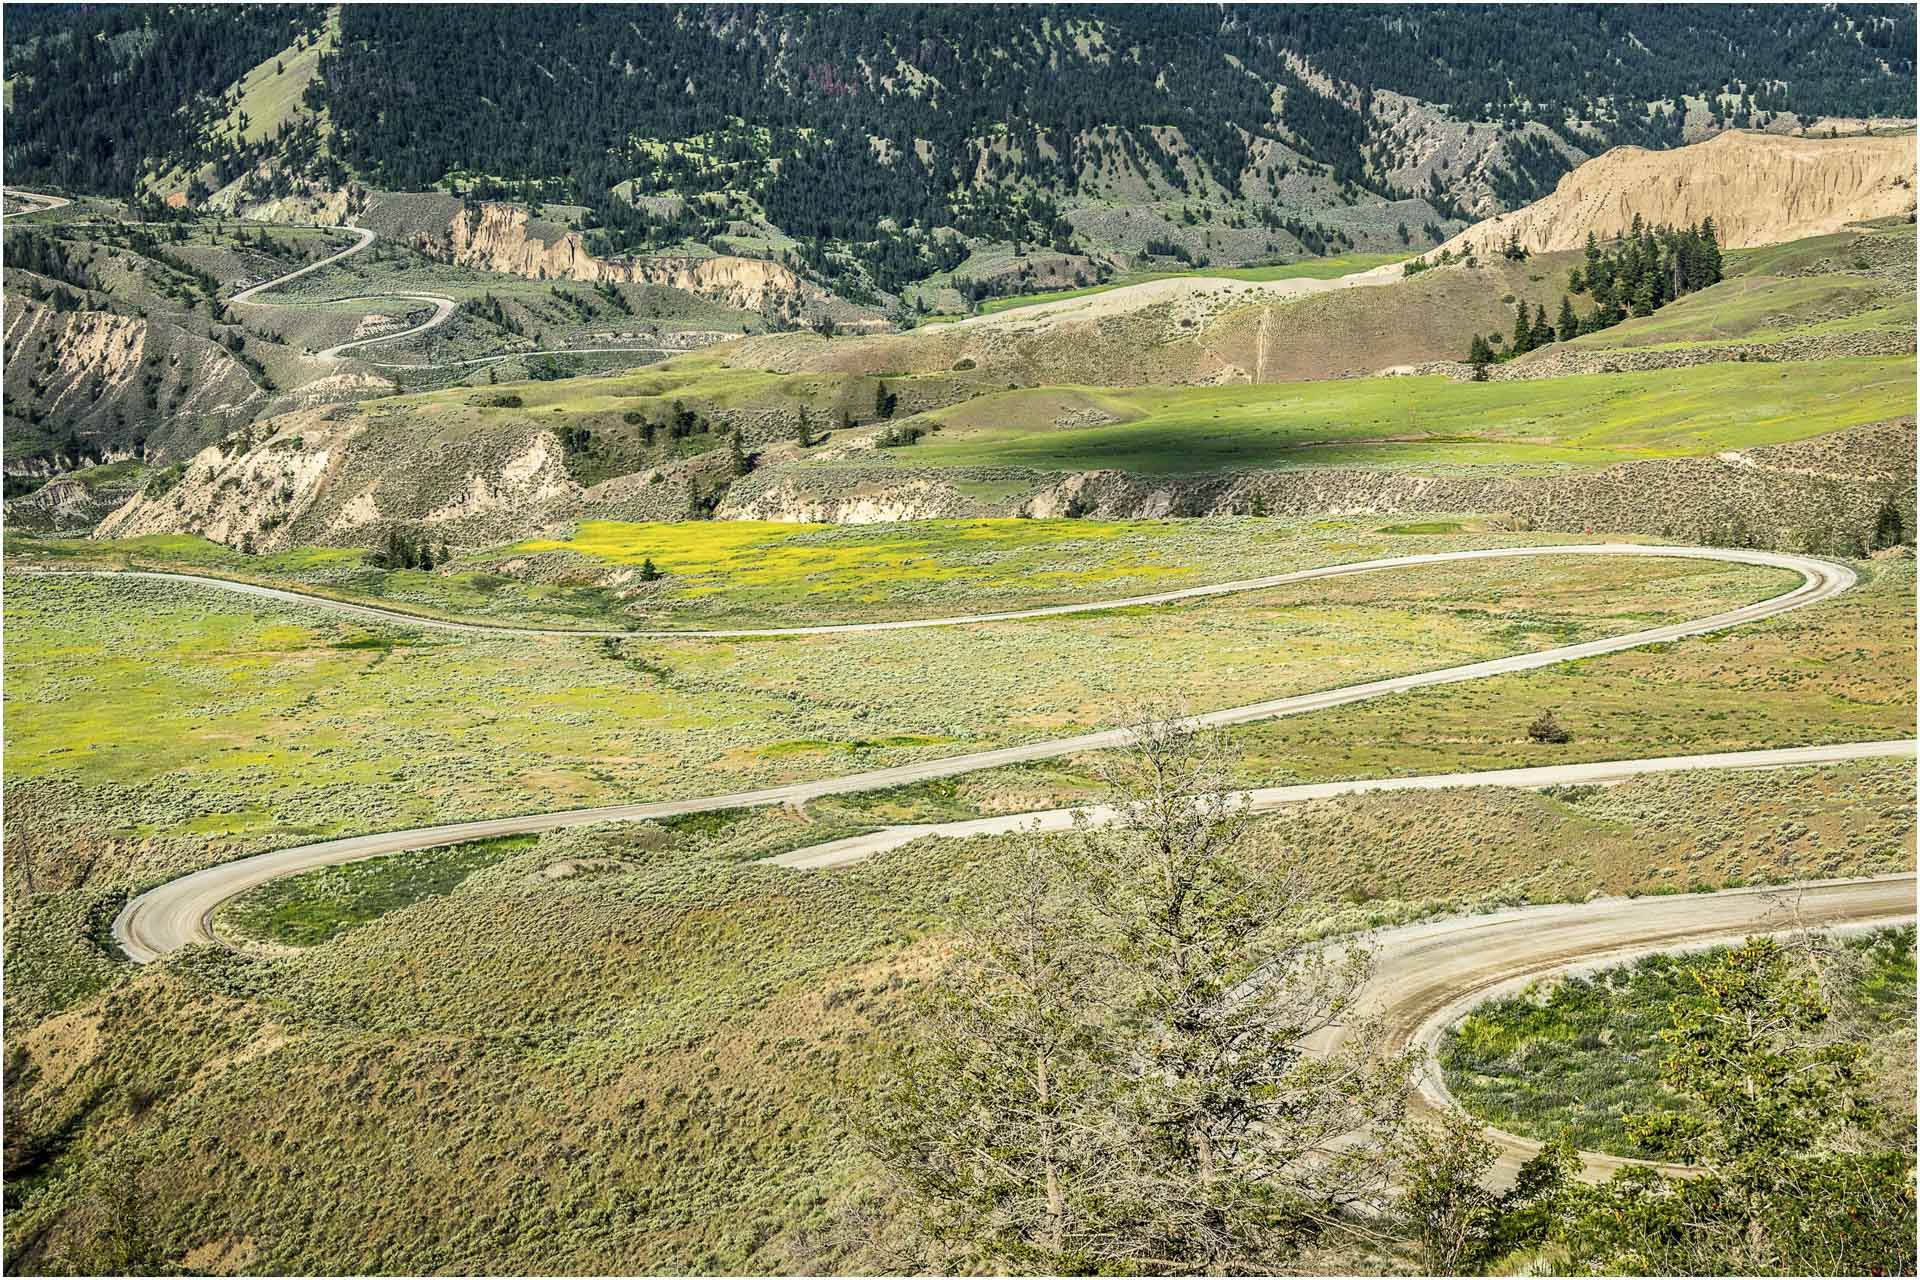 Farwell Canyon1 © Larry Citra